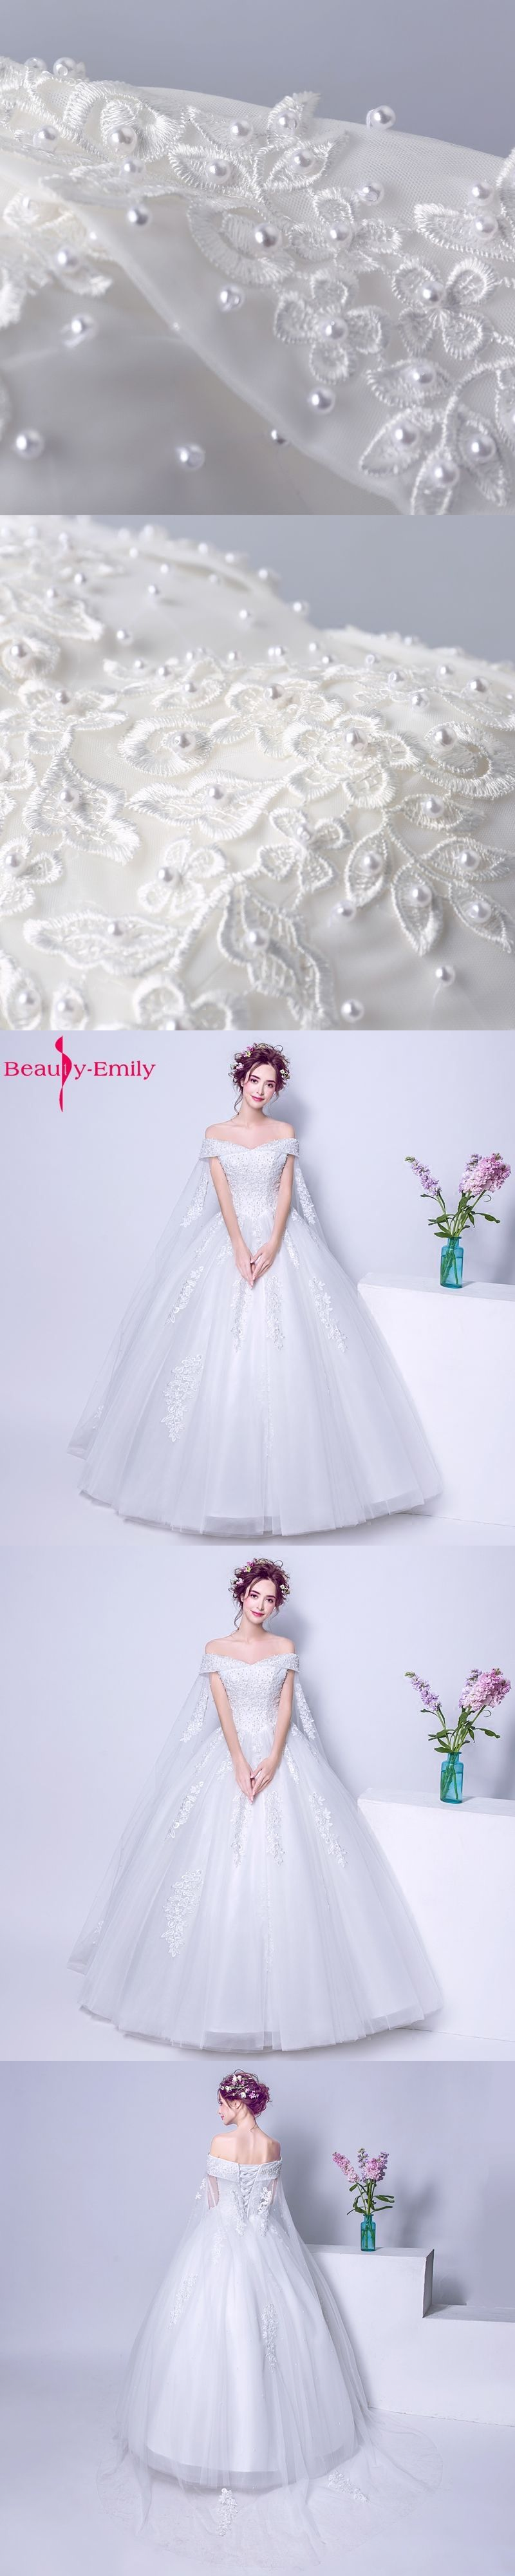 Beauty-Emily Luxury Pears Ball Gown White Plus Size Wedding Dresses with Cloak  Sleeveless Lace 344a66393f4e